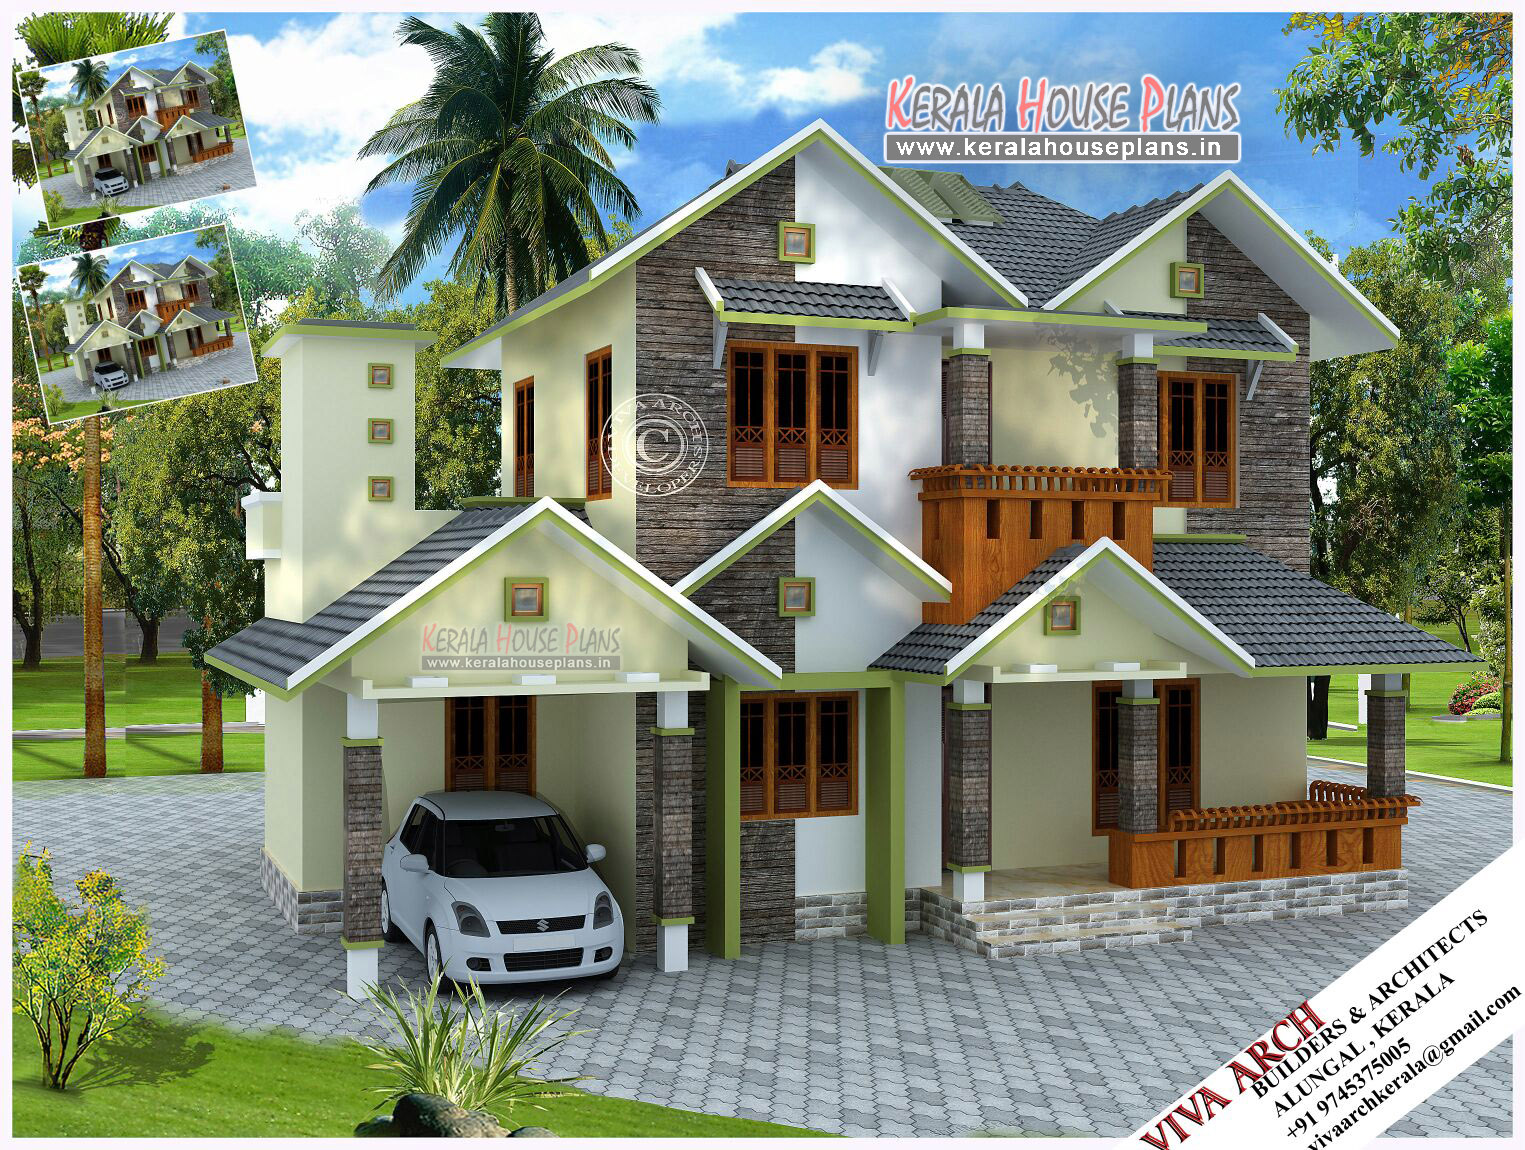 Village house plans designs home design and style for Village house design images